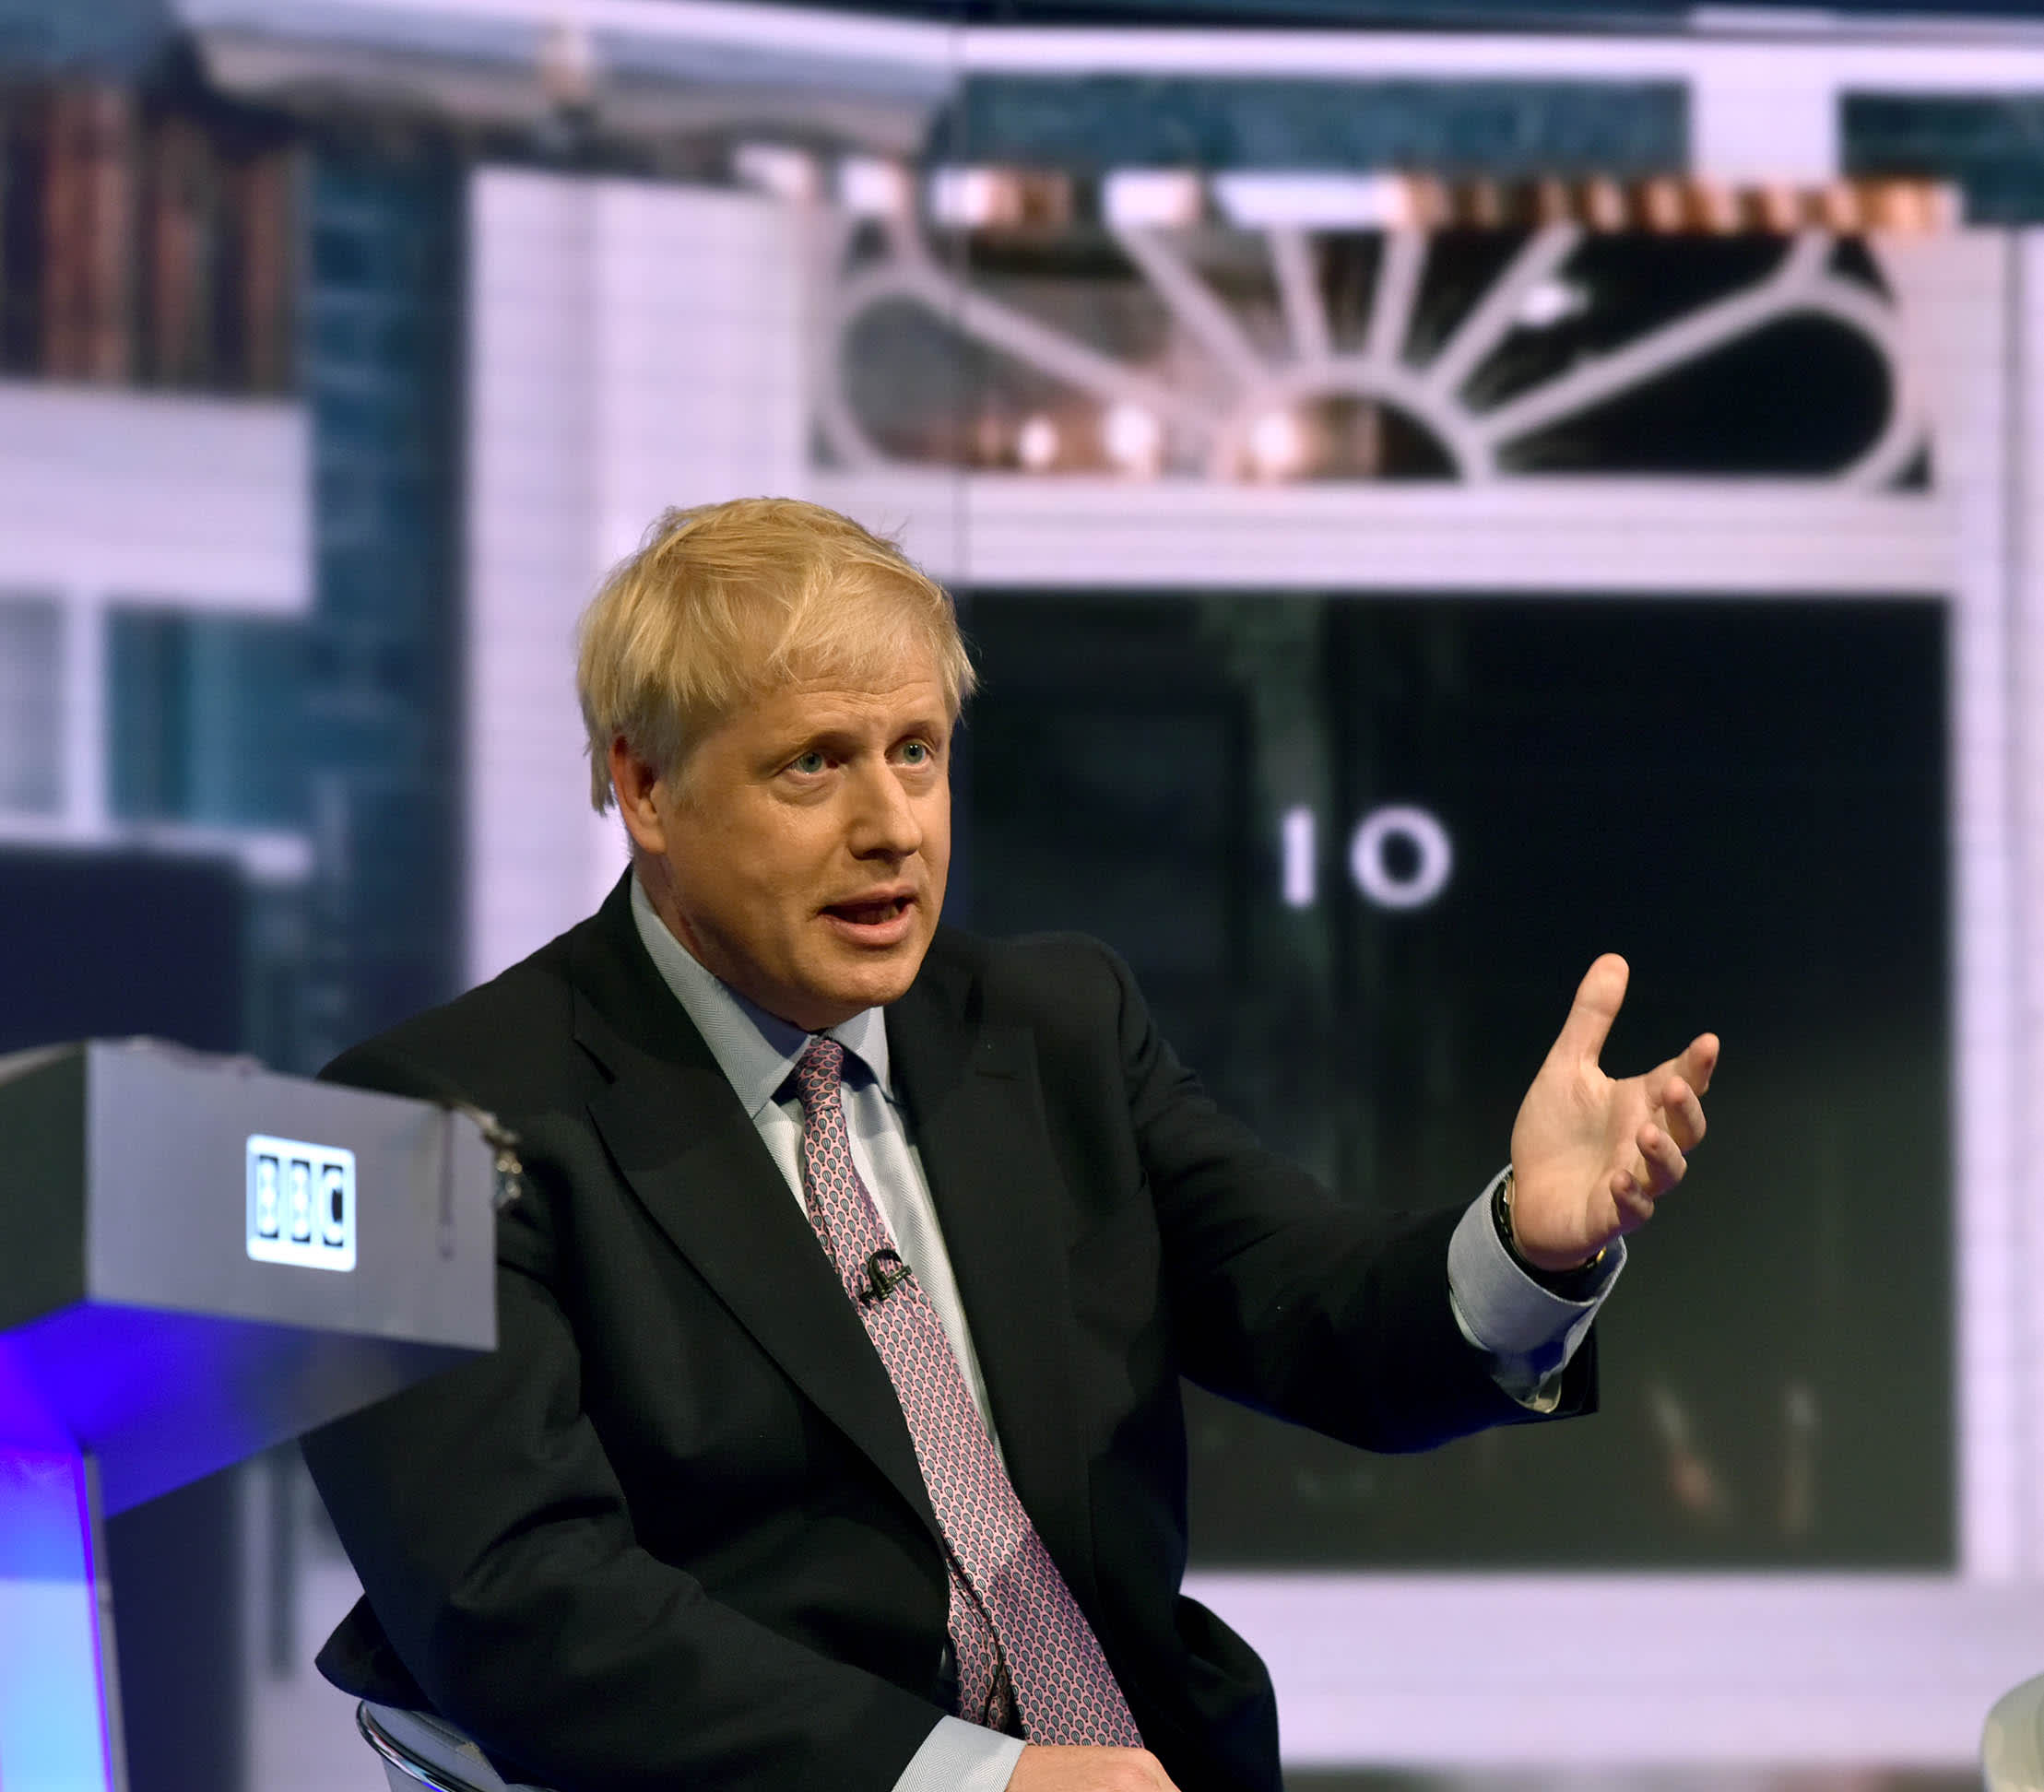 Brexit campaigner Johnson far ahead in race to lead Britain; Sajid Javed eliminated